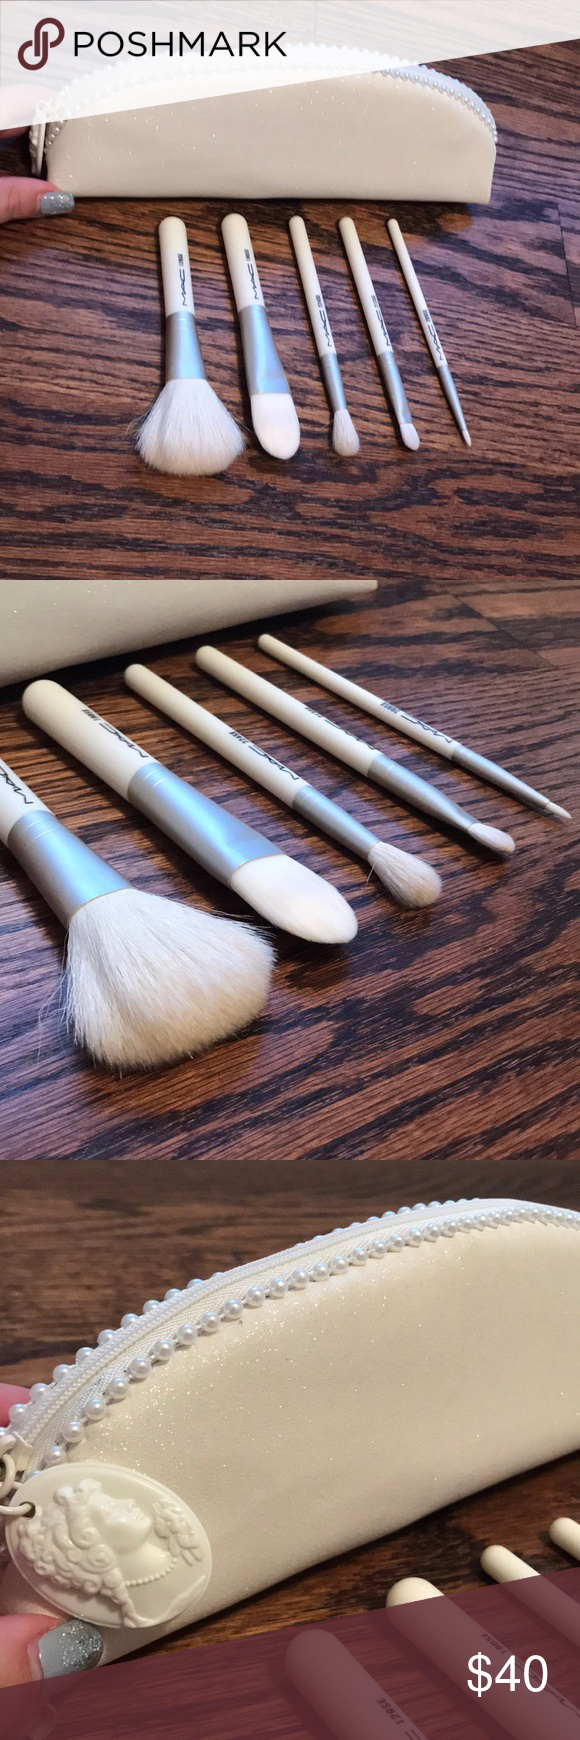 MAC makeup brush set 6 piece MAC white makeup brush set. 5